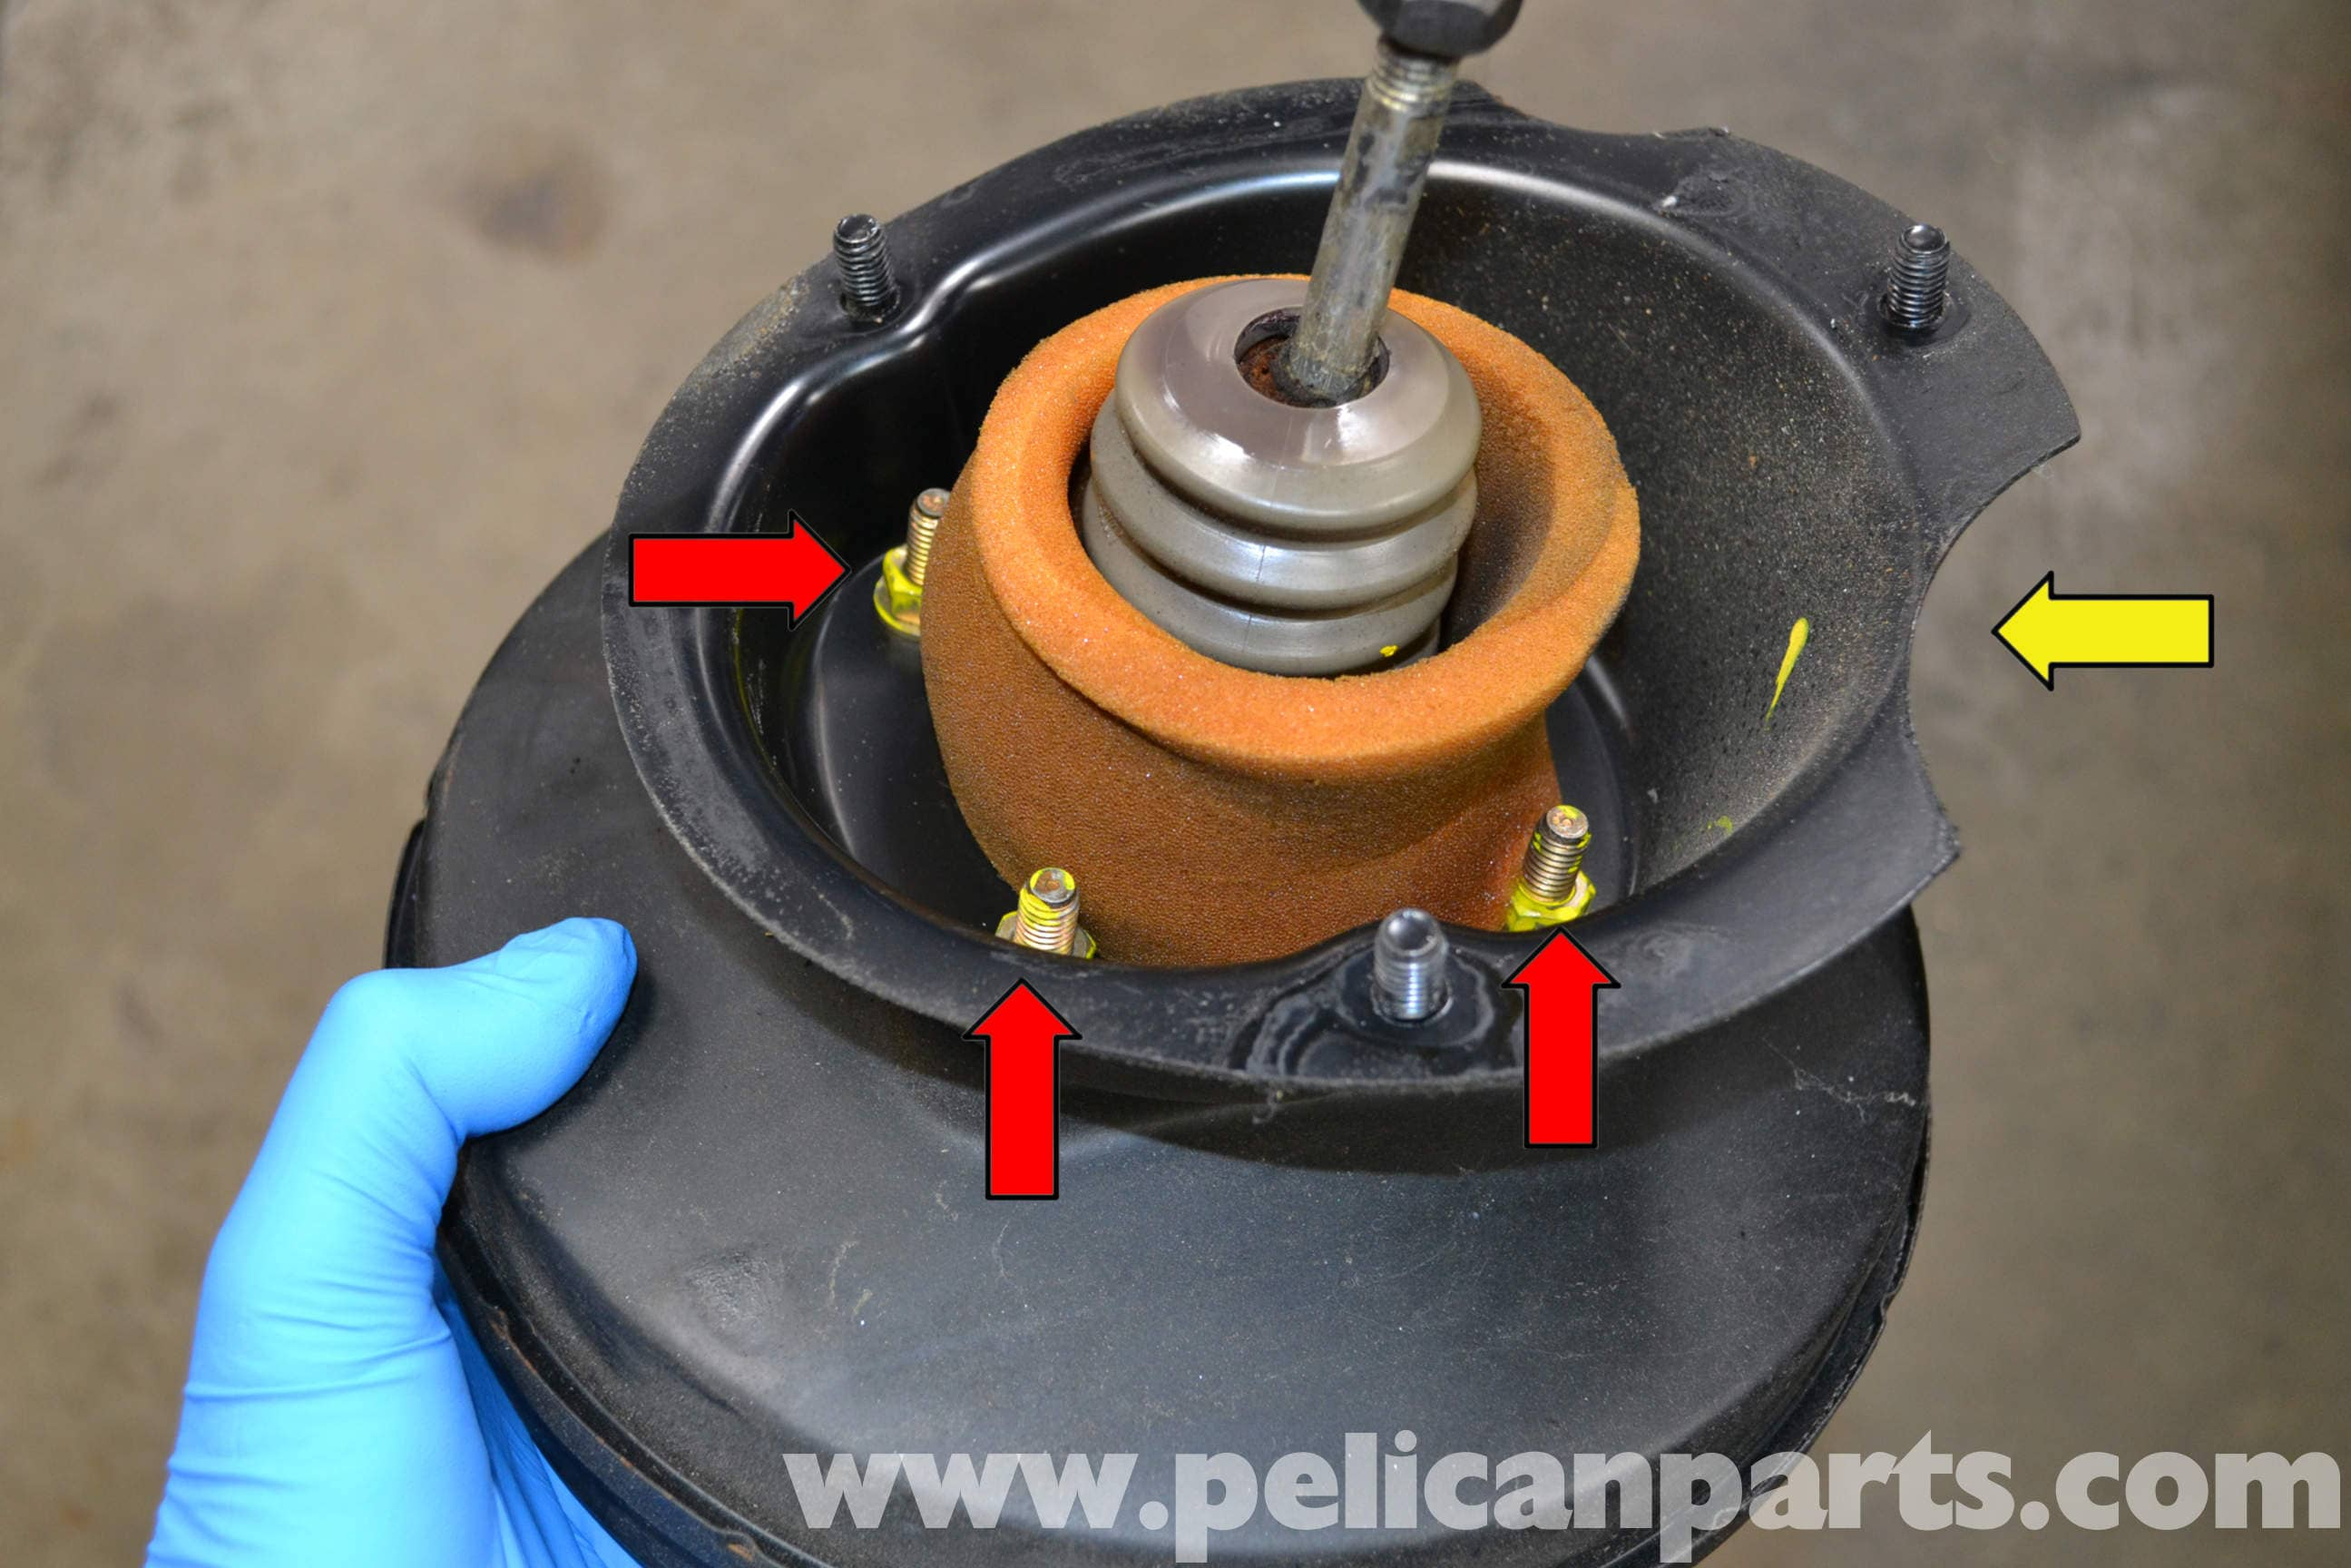 Porsche 944 Turbo Brake Booster Replacement (1986-1991